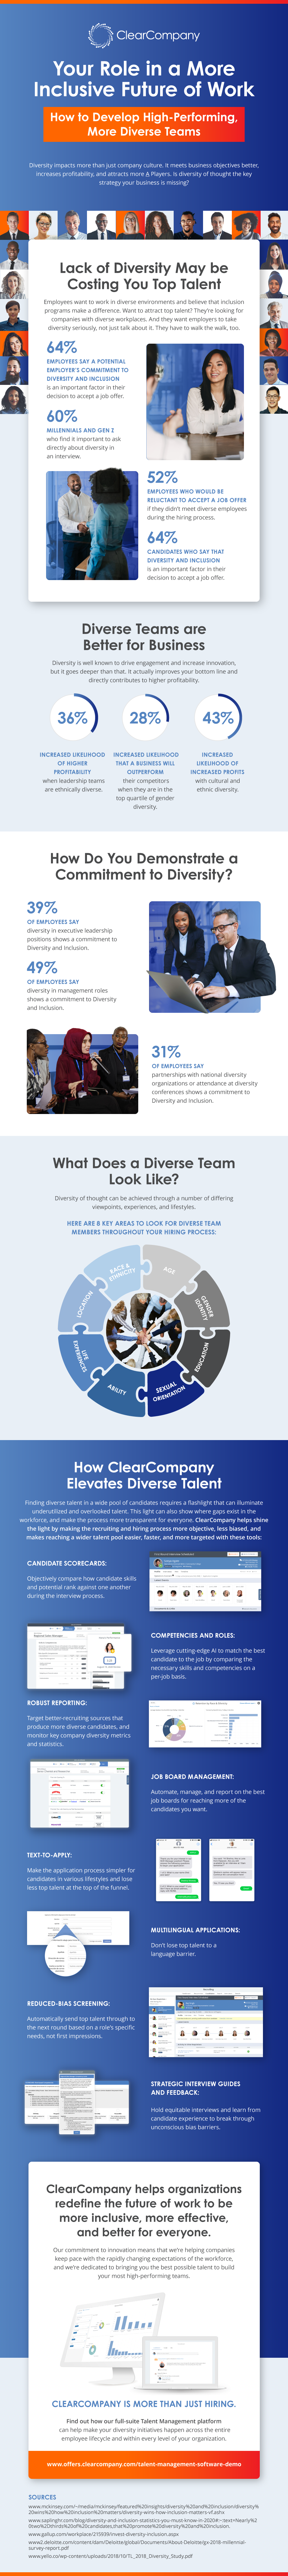 Your Role in a More Inclusive Future of Work Infographic